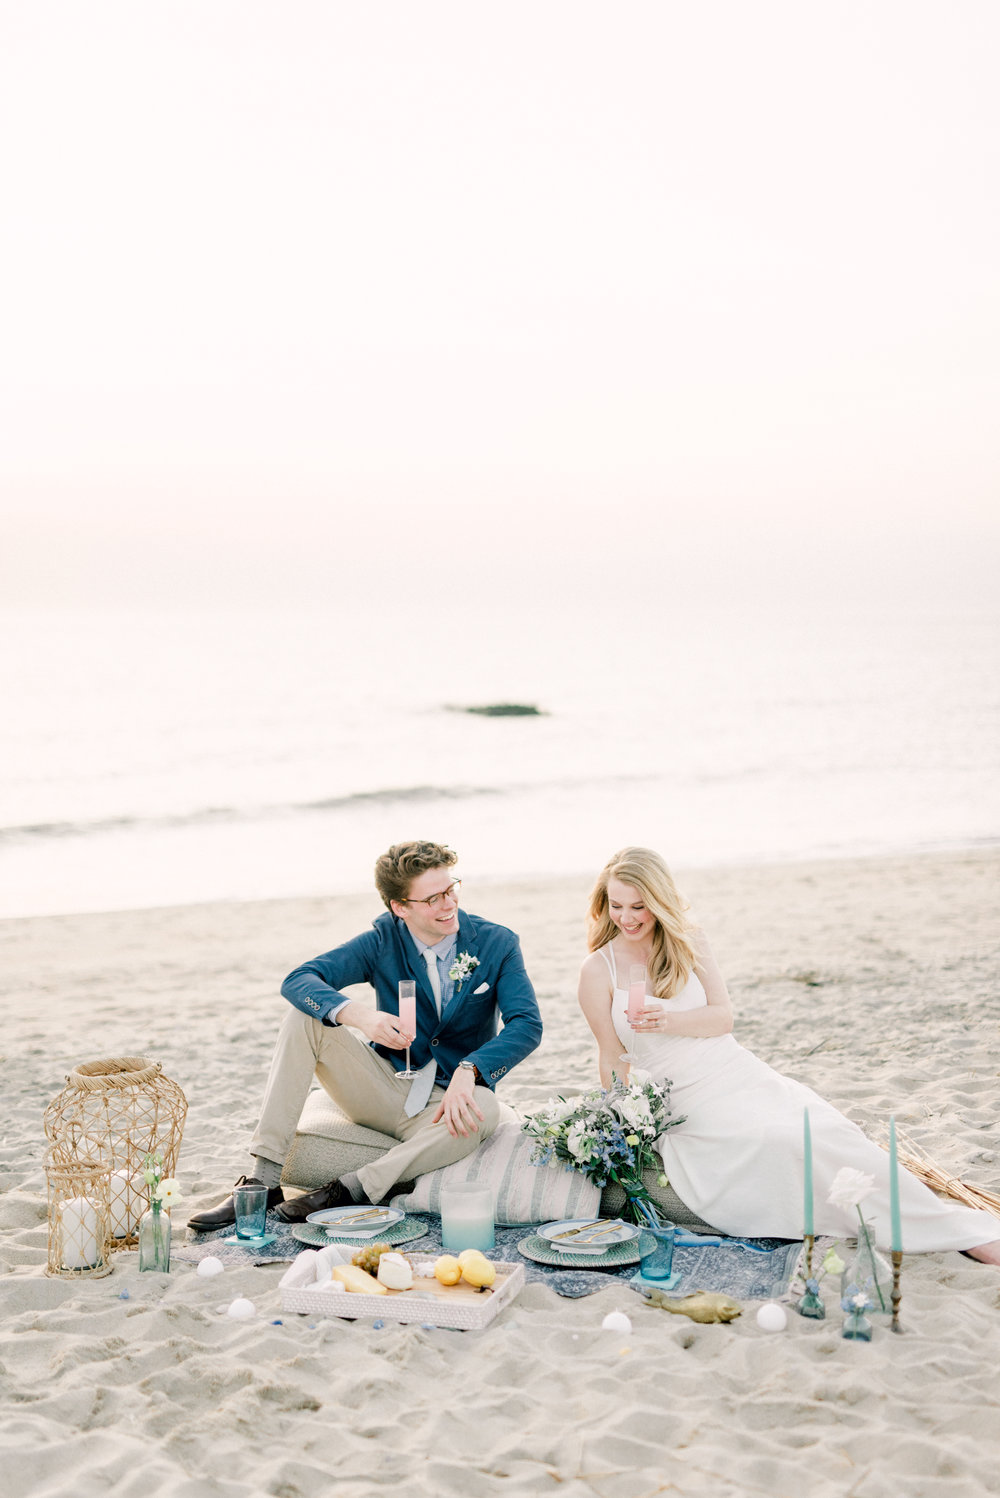 haley-richter-photography-clover-event-co-cape-may-new-jersey-wedding-elopement-at-congress-hall-sea-glass-inspired-090.jpg